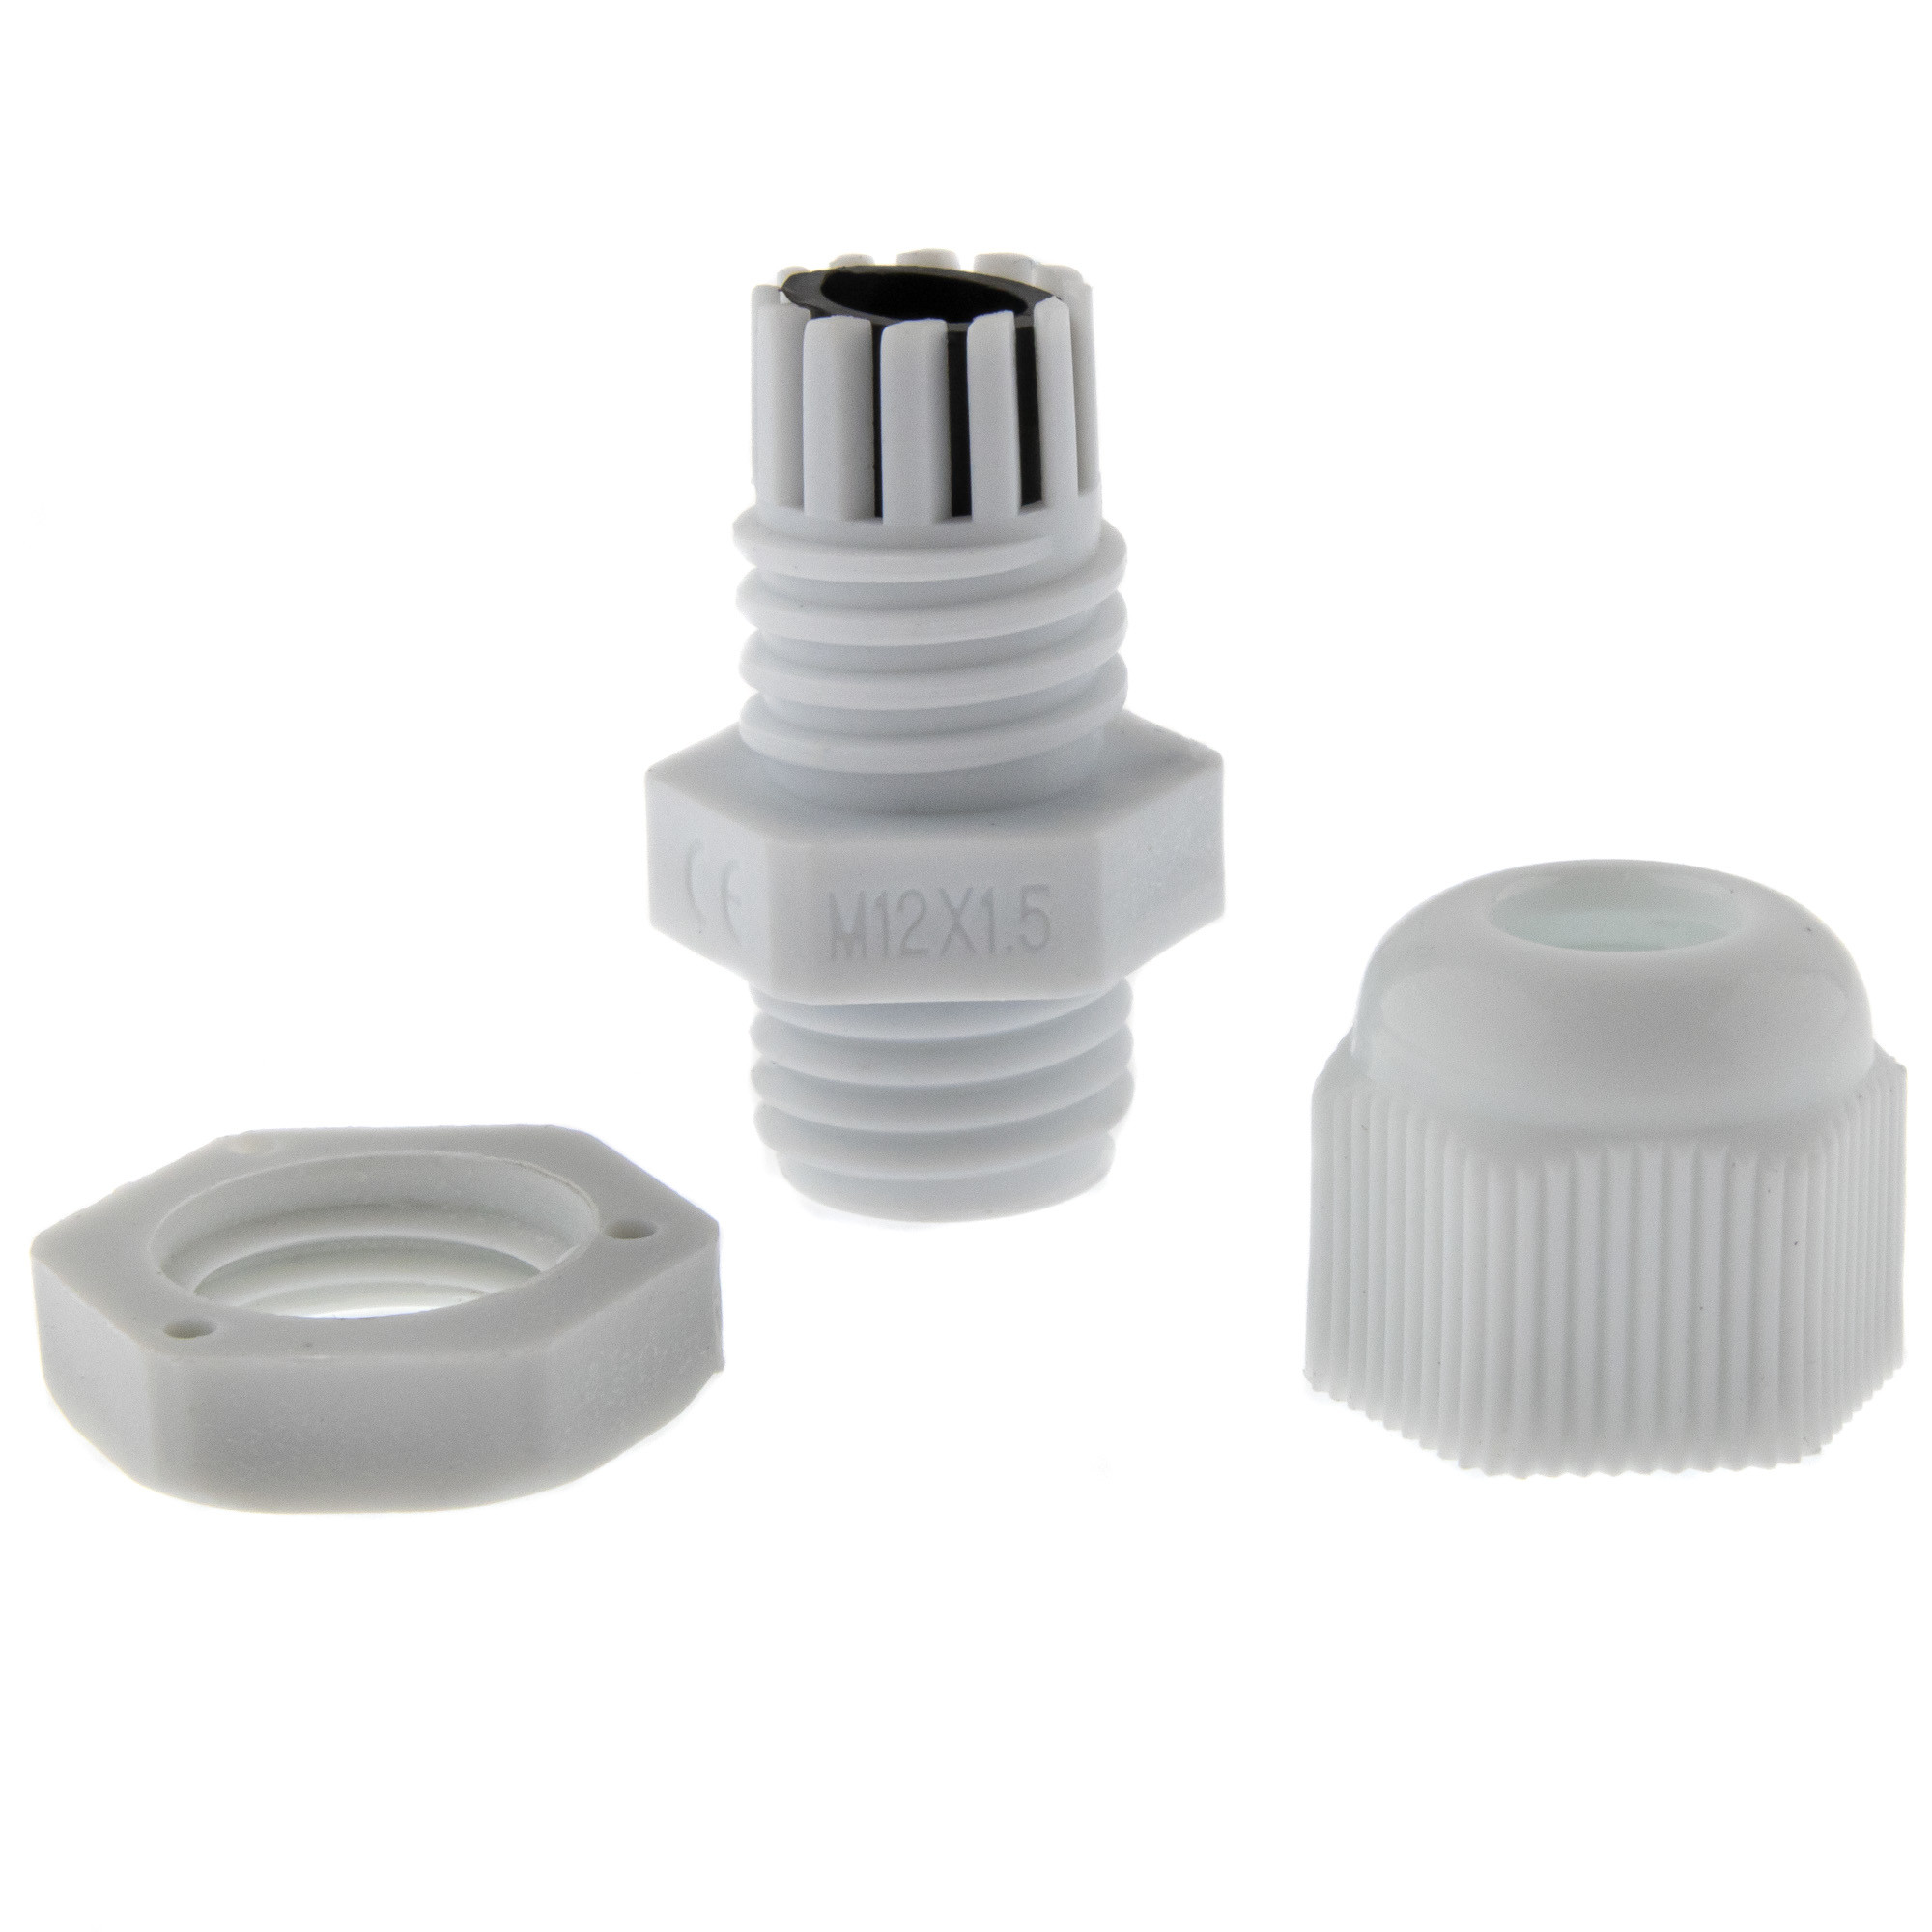 Cable gland M12 - grey